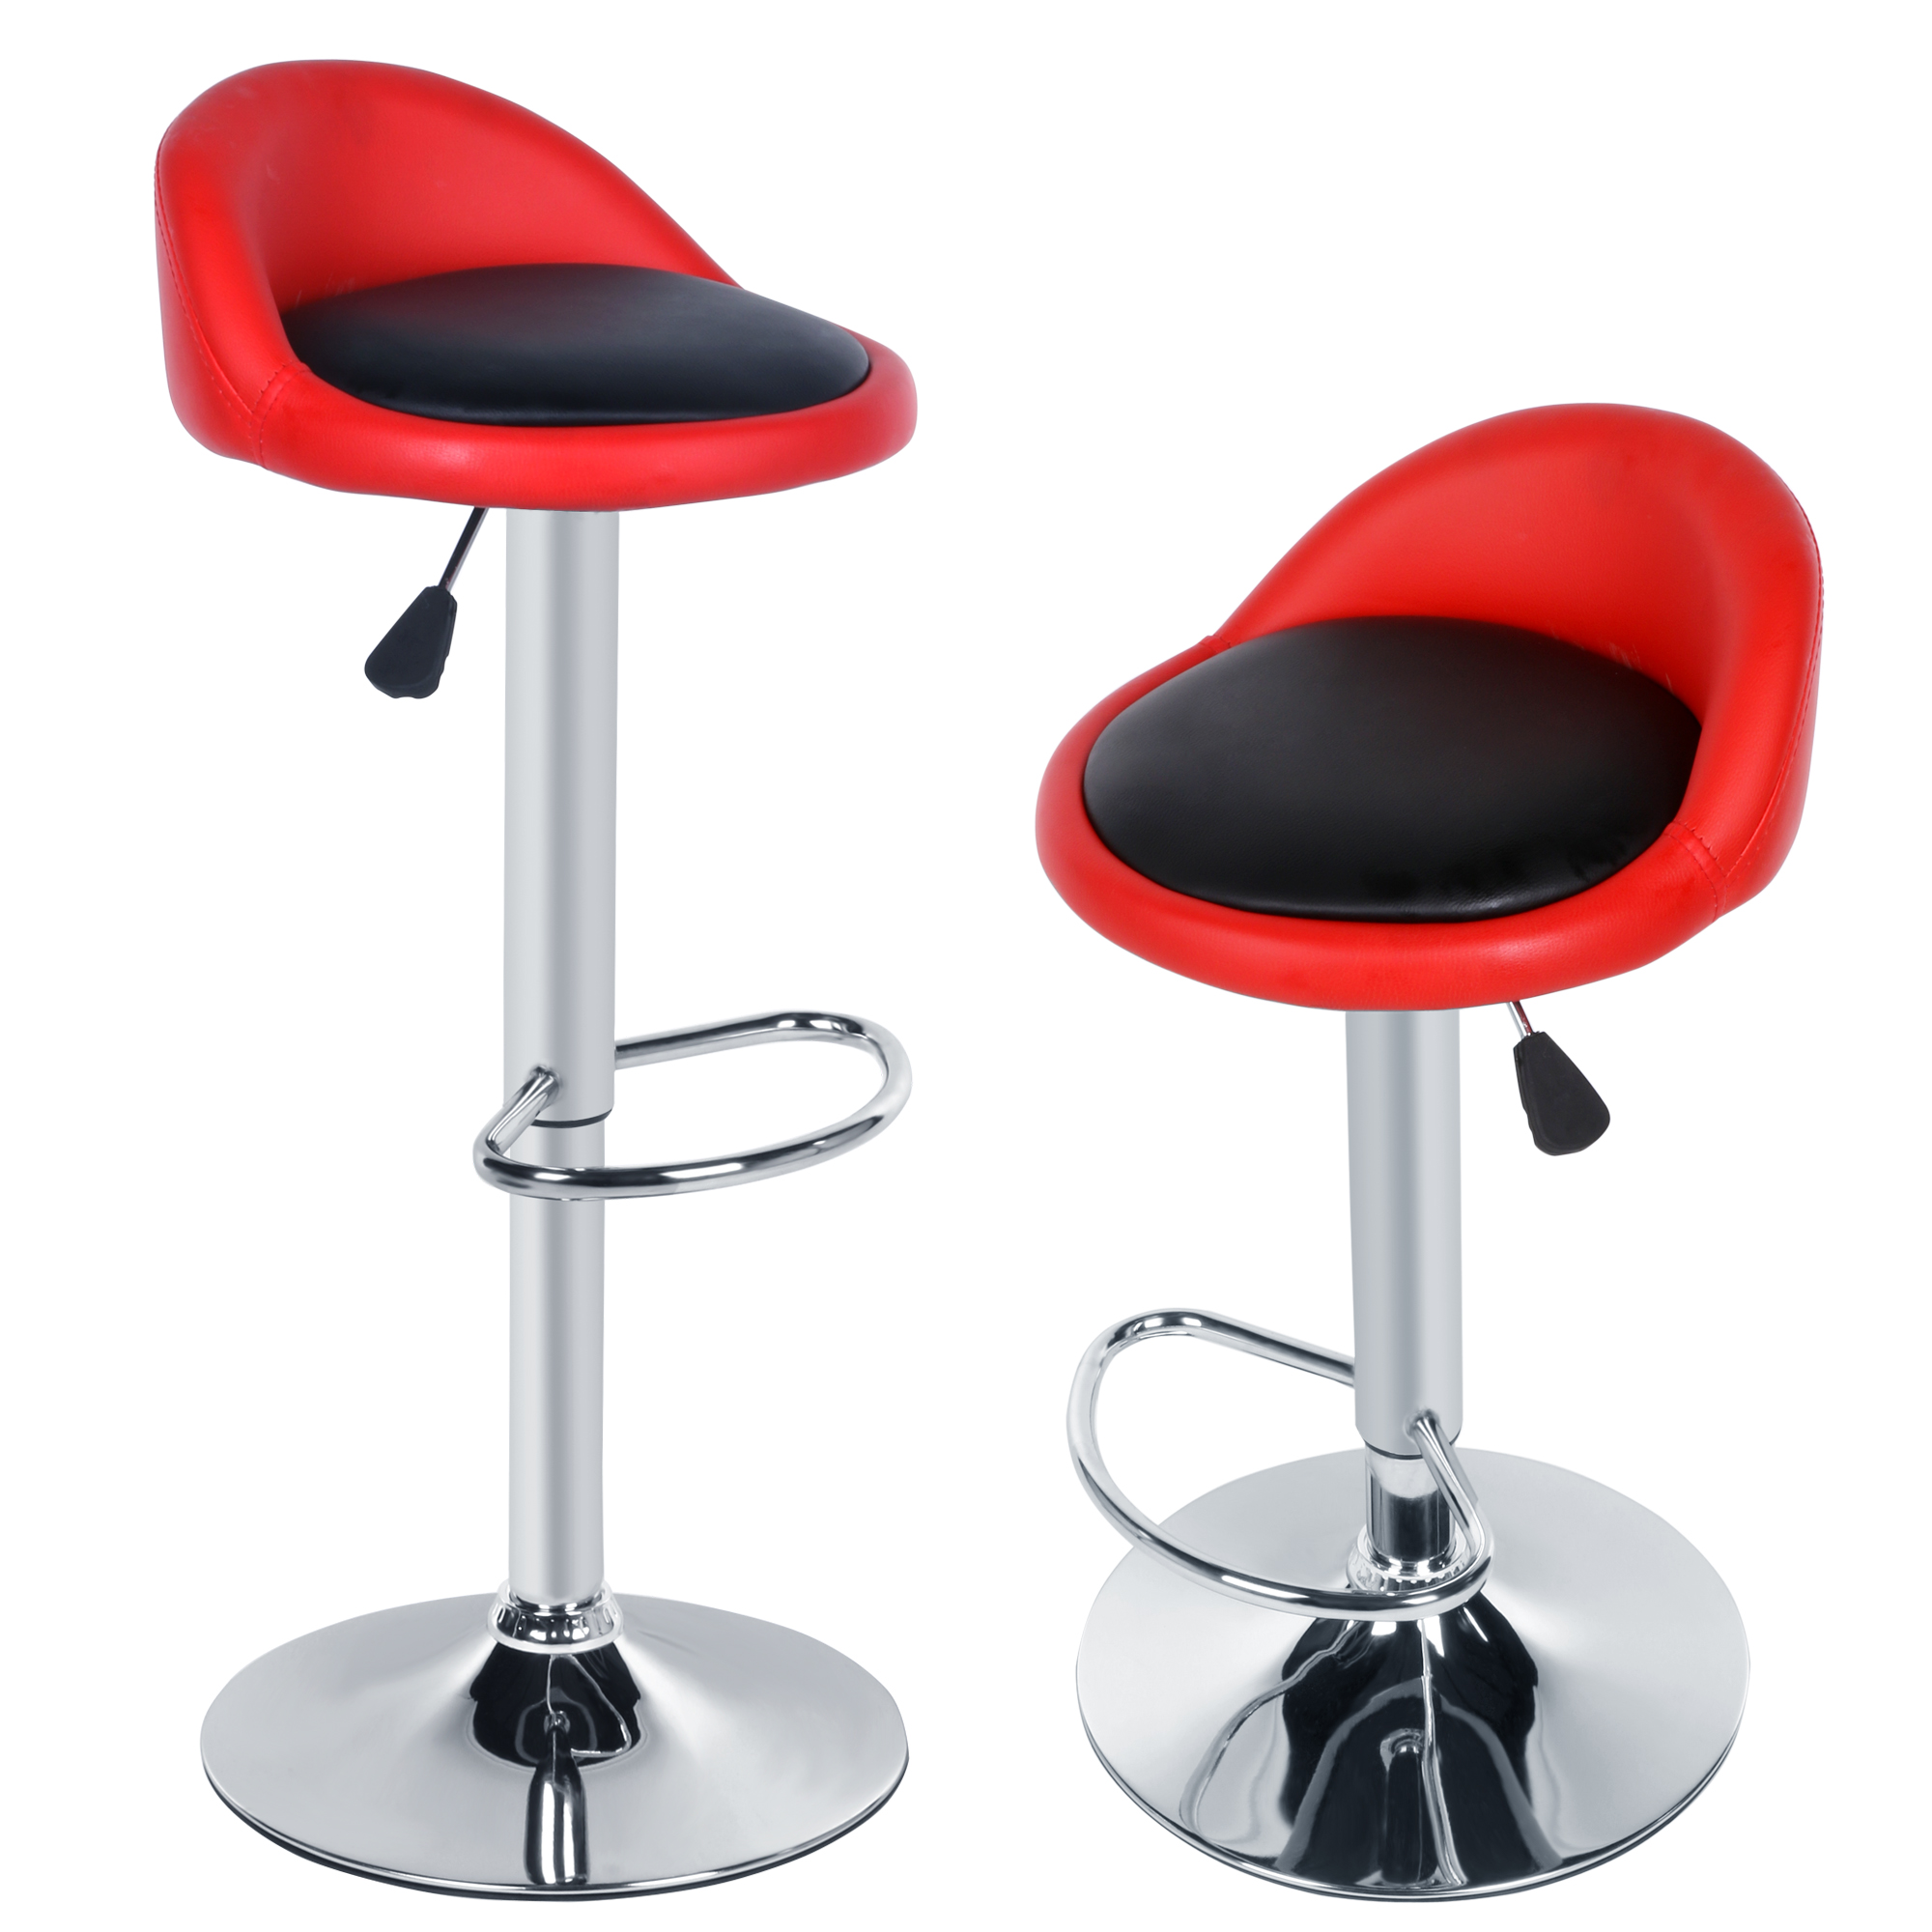 Homdox 2pcs Synthetic Leather Rotating Adjustable Height Bar Stool